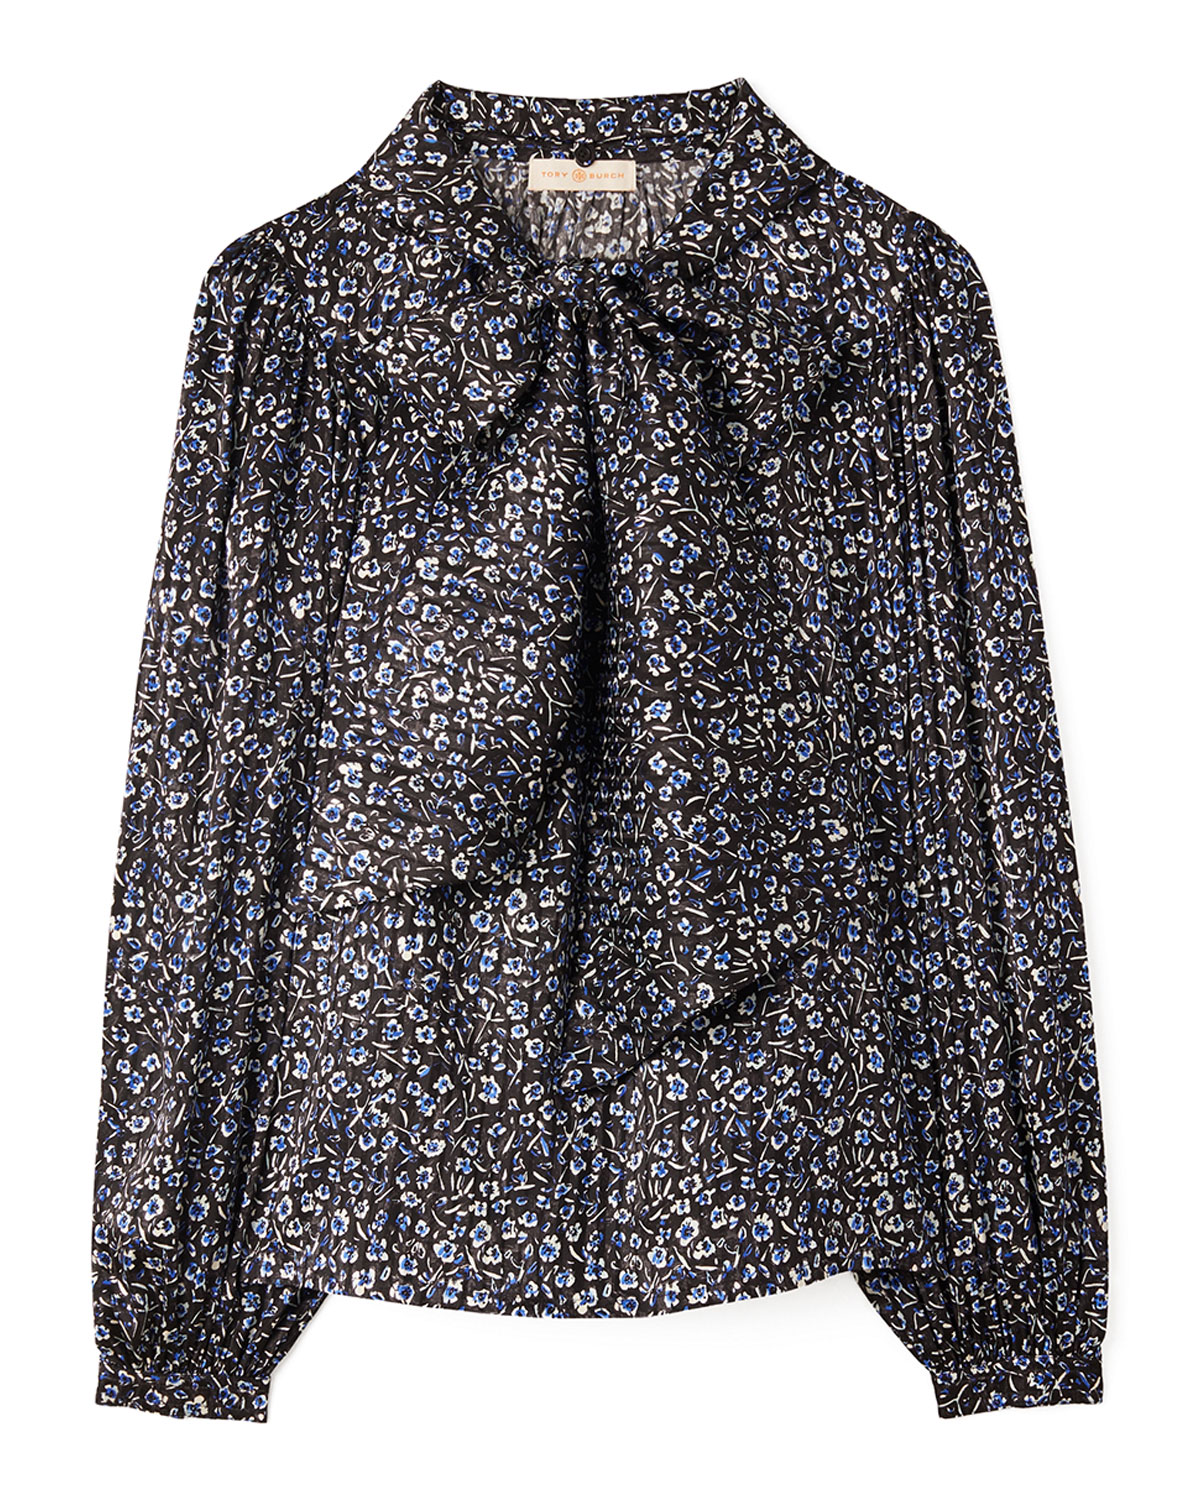 Tory Burch Floral Printed Stretch Silk Bow Blouse